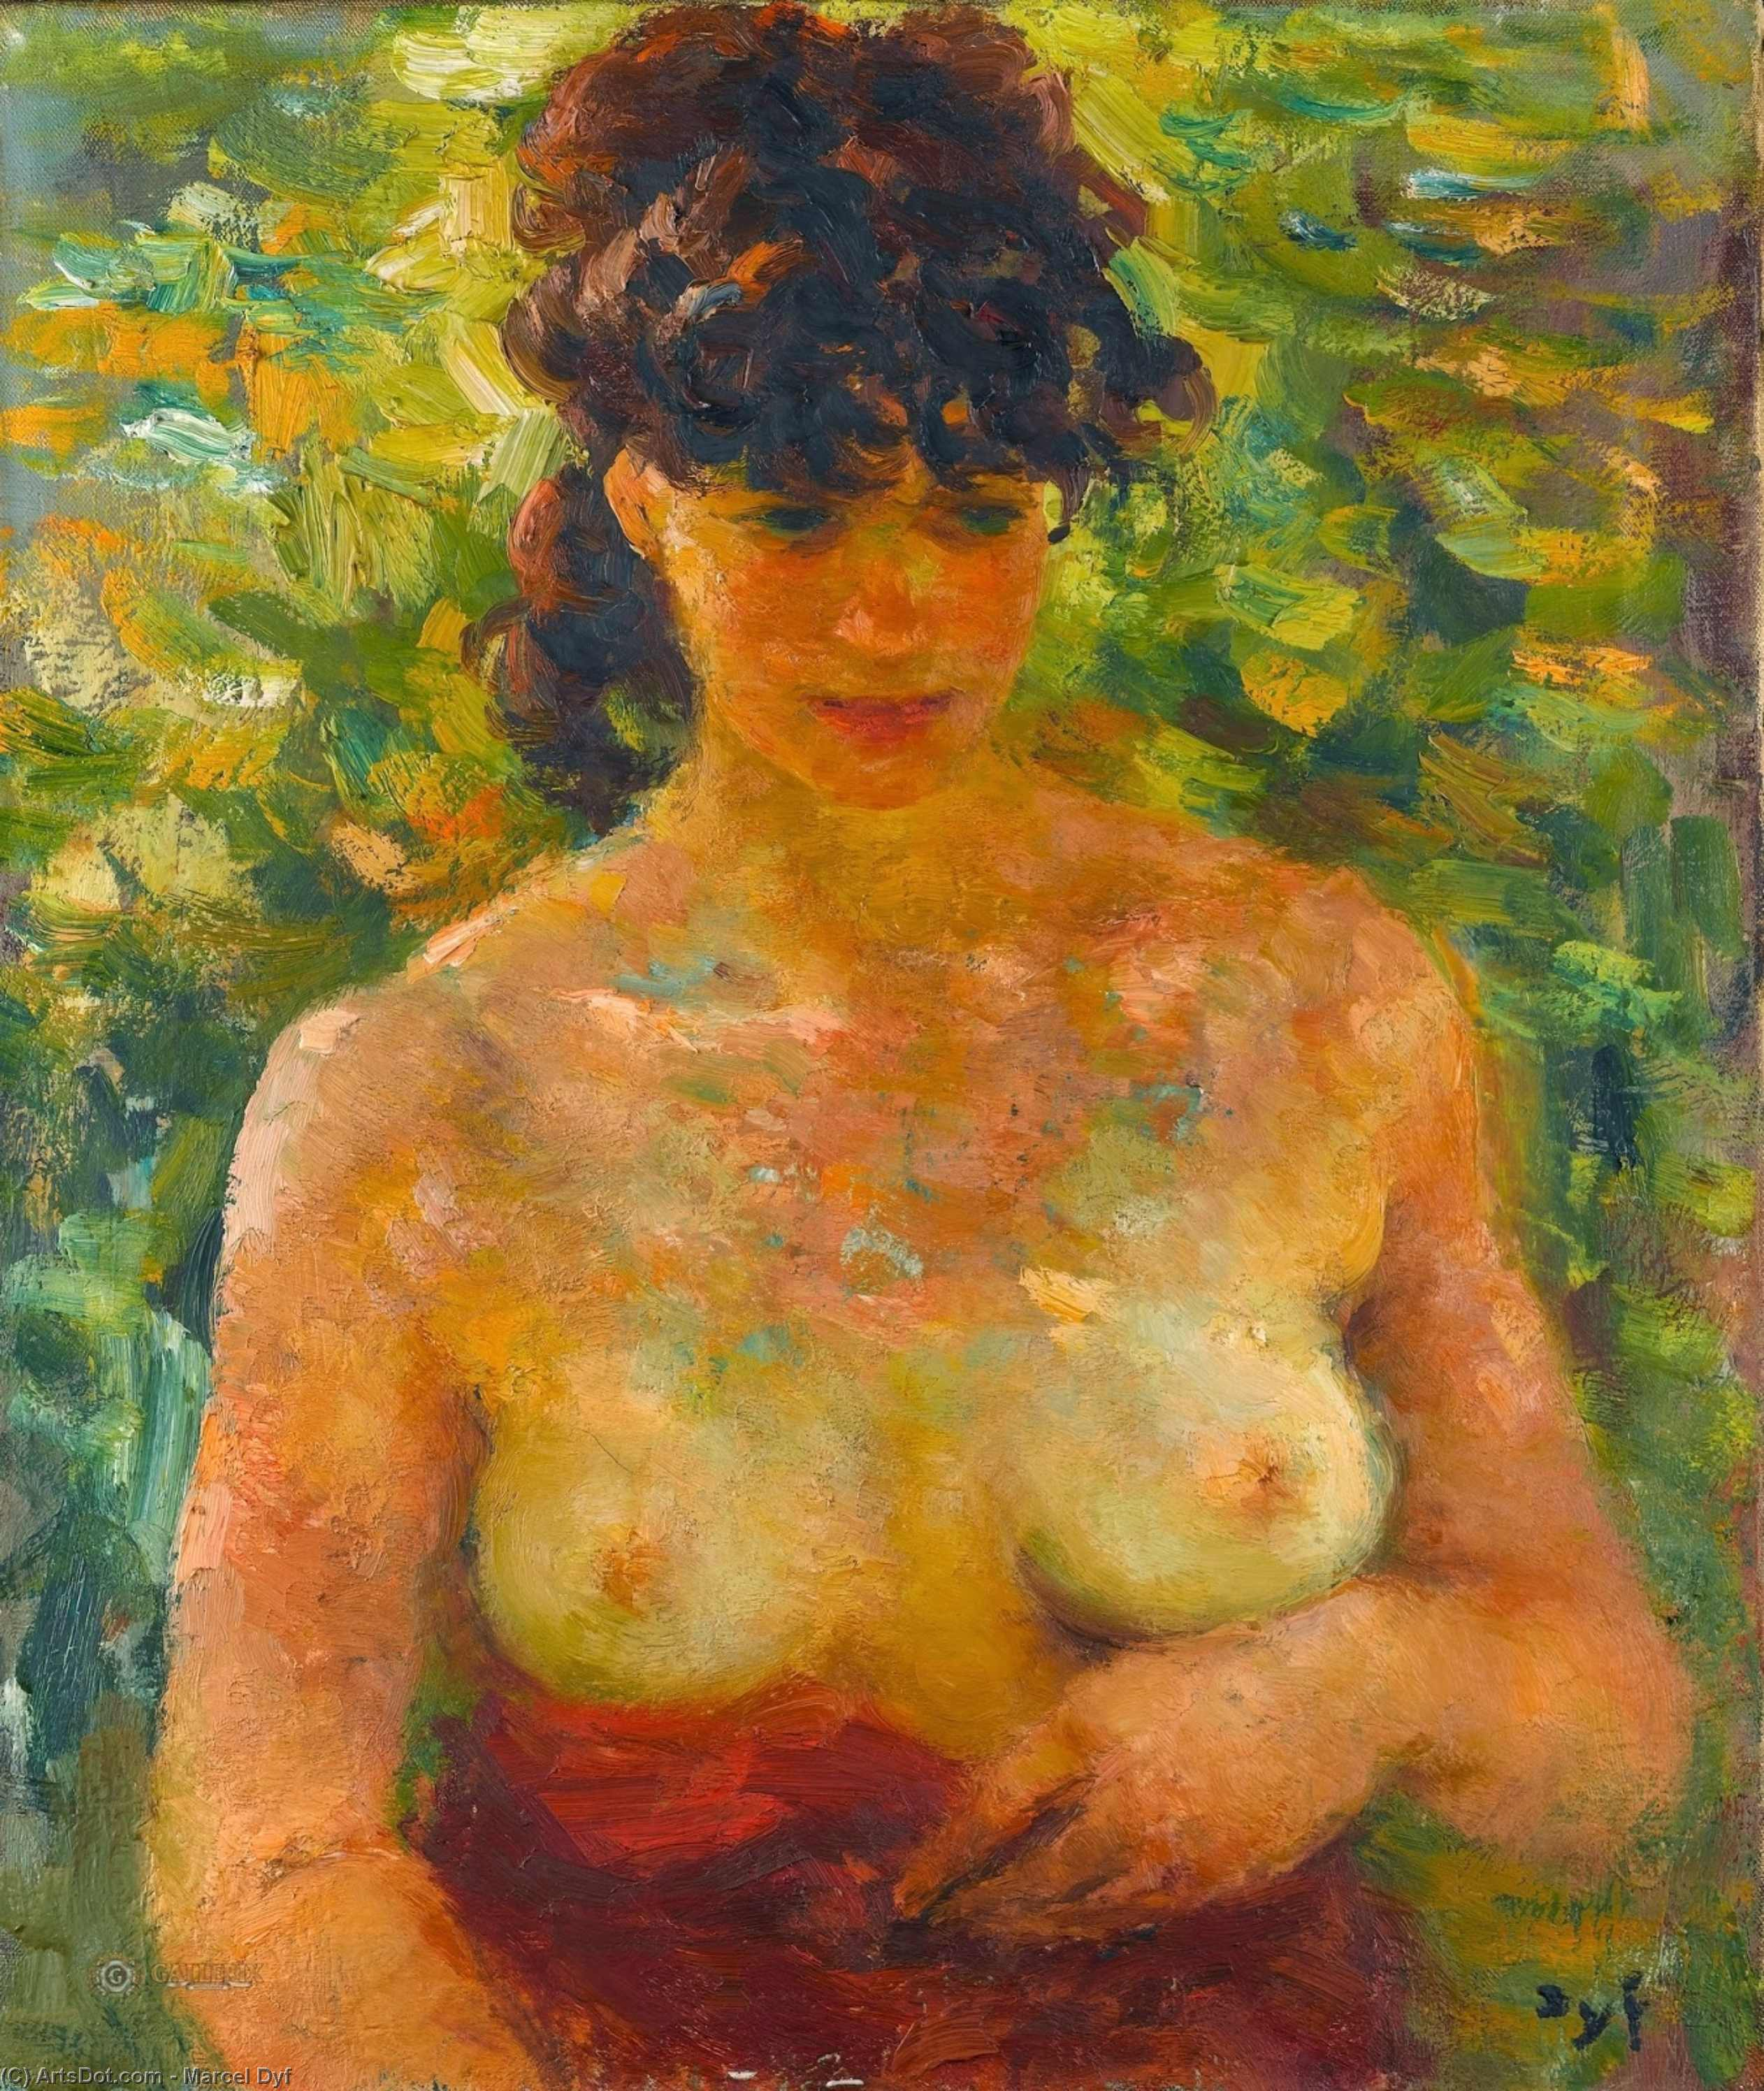 Nude Torso in Sunlight by Marcel Dyf (1899-1985, France)